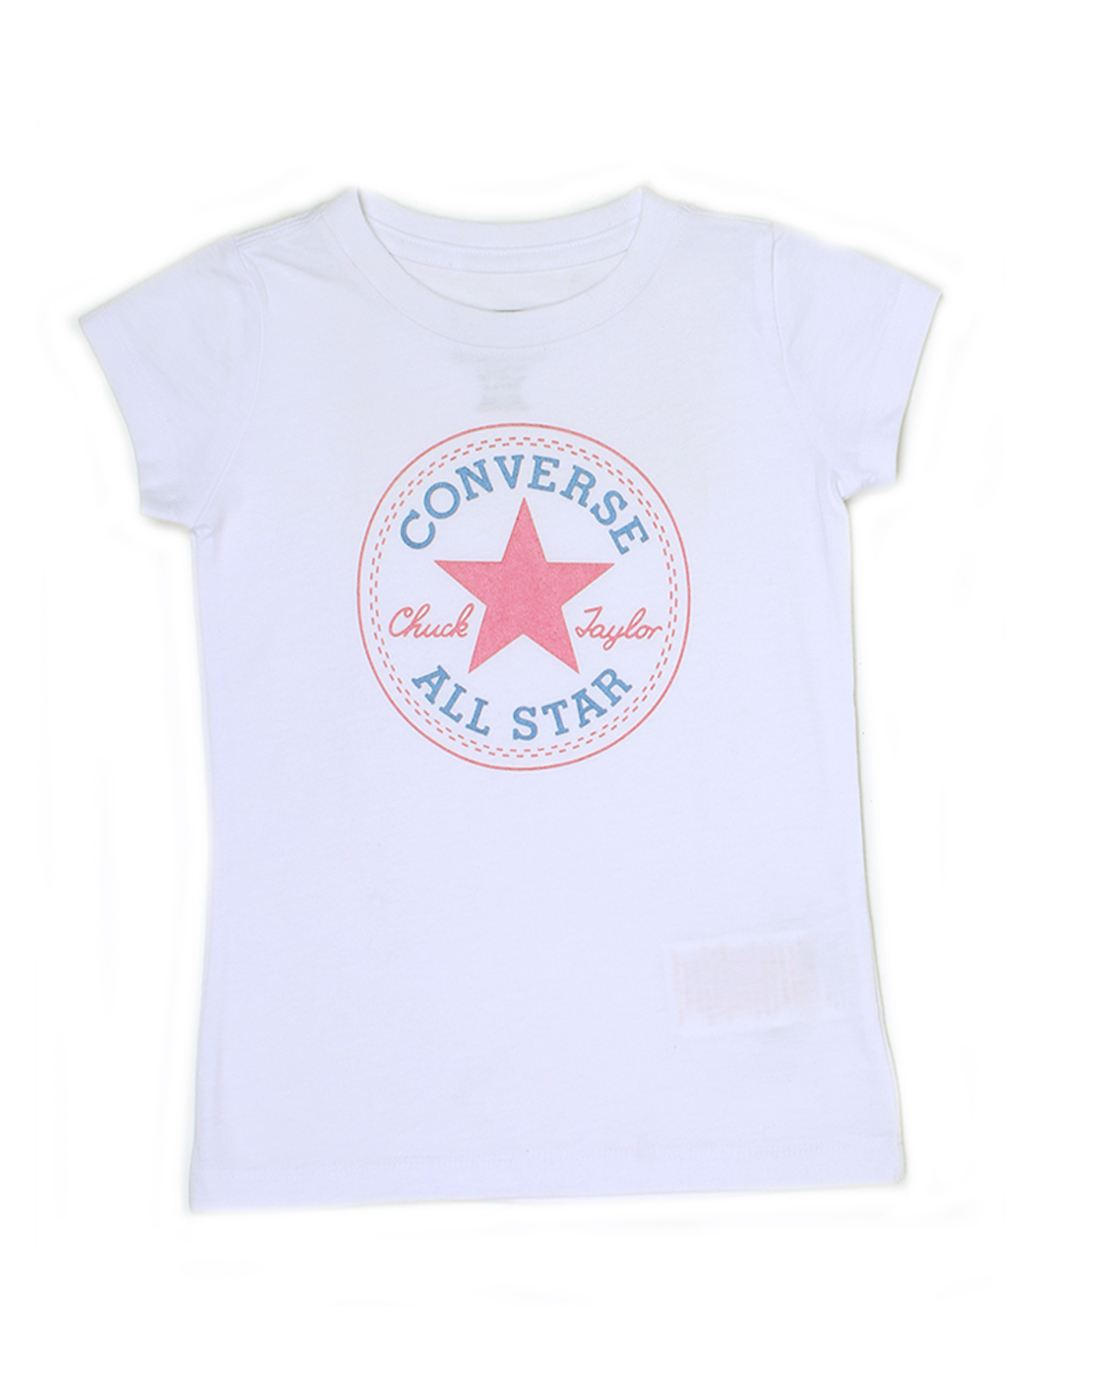 Converse Girls White Top